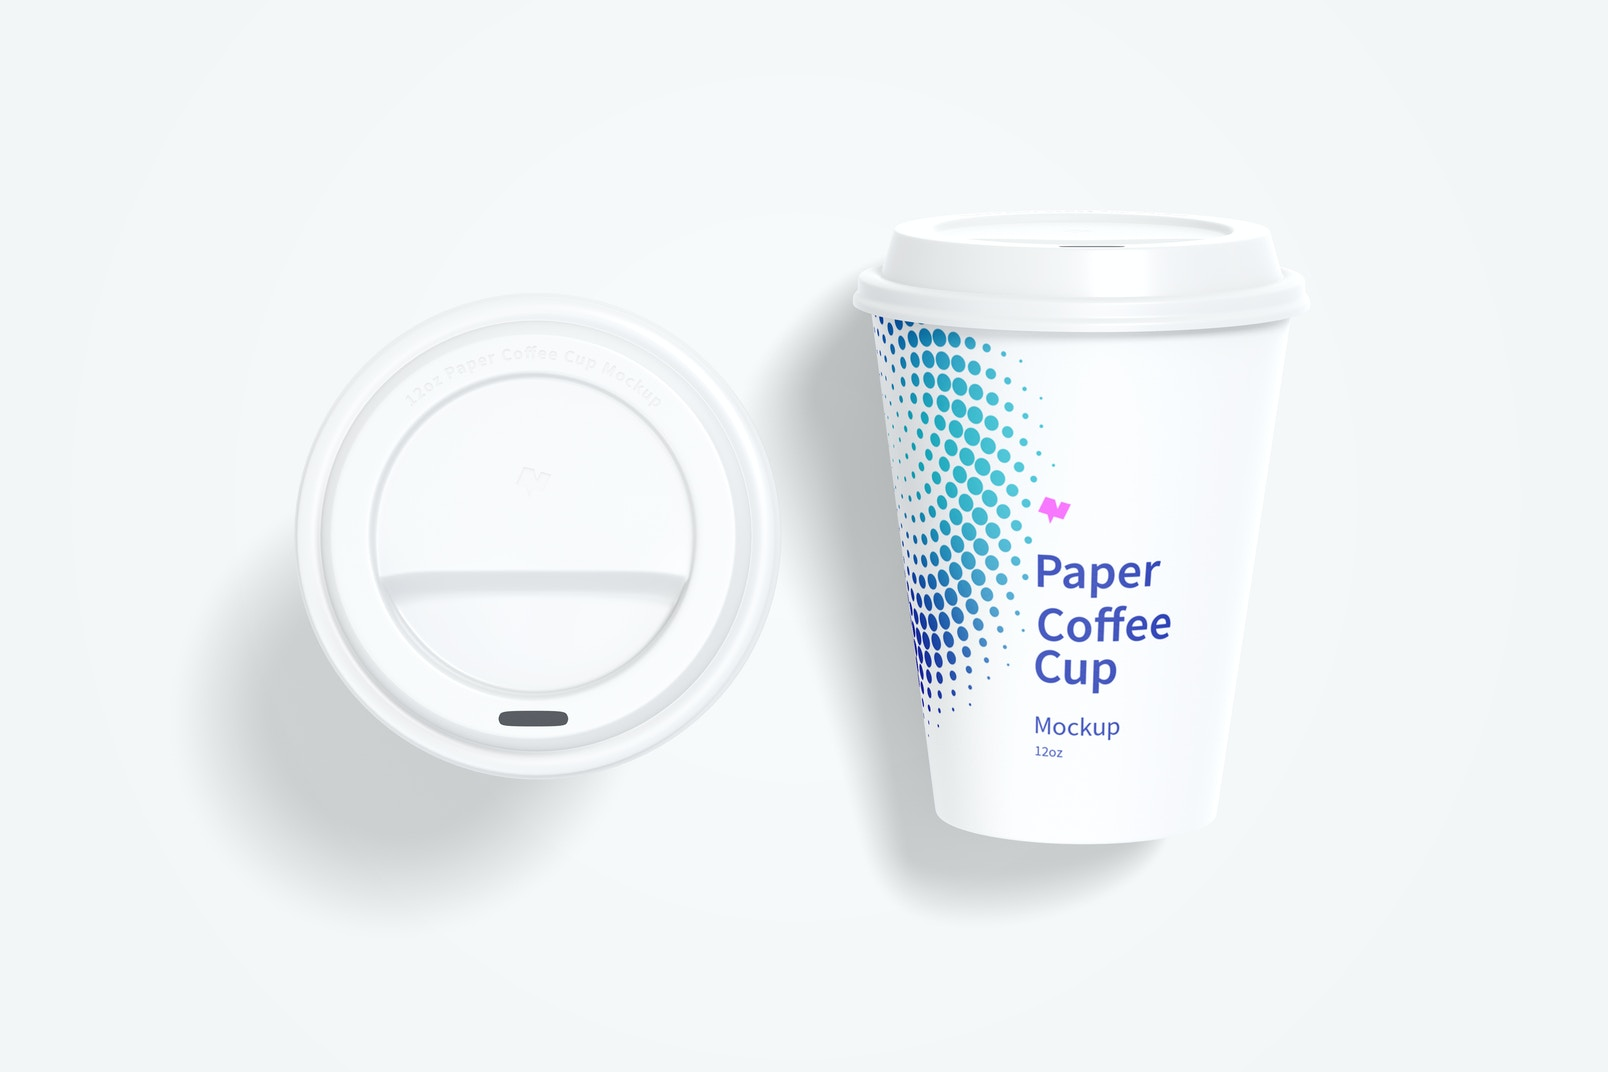 12oz Paper Coffee Cups Mockup, Top View